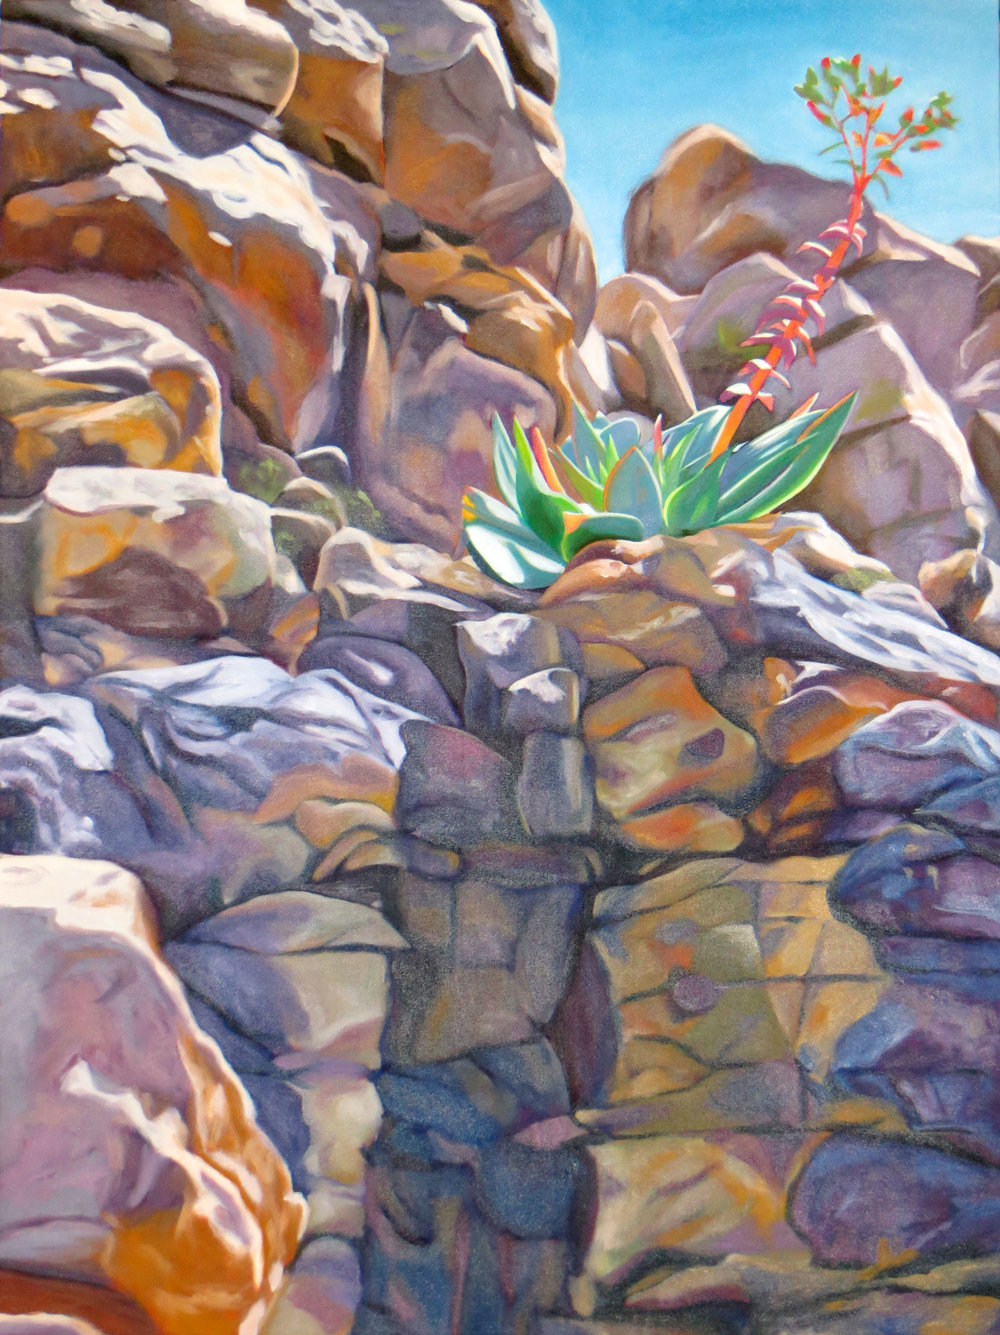 Dudleya on the Rocks